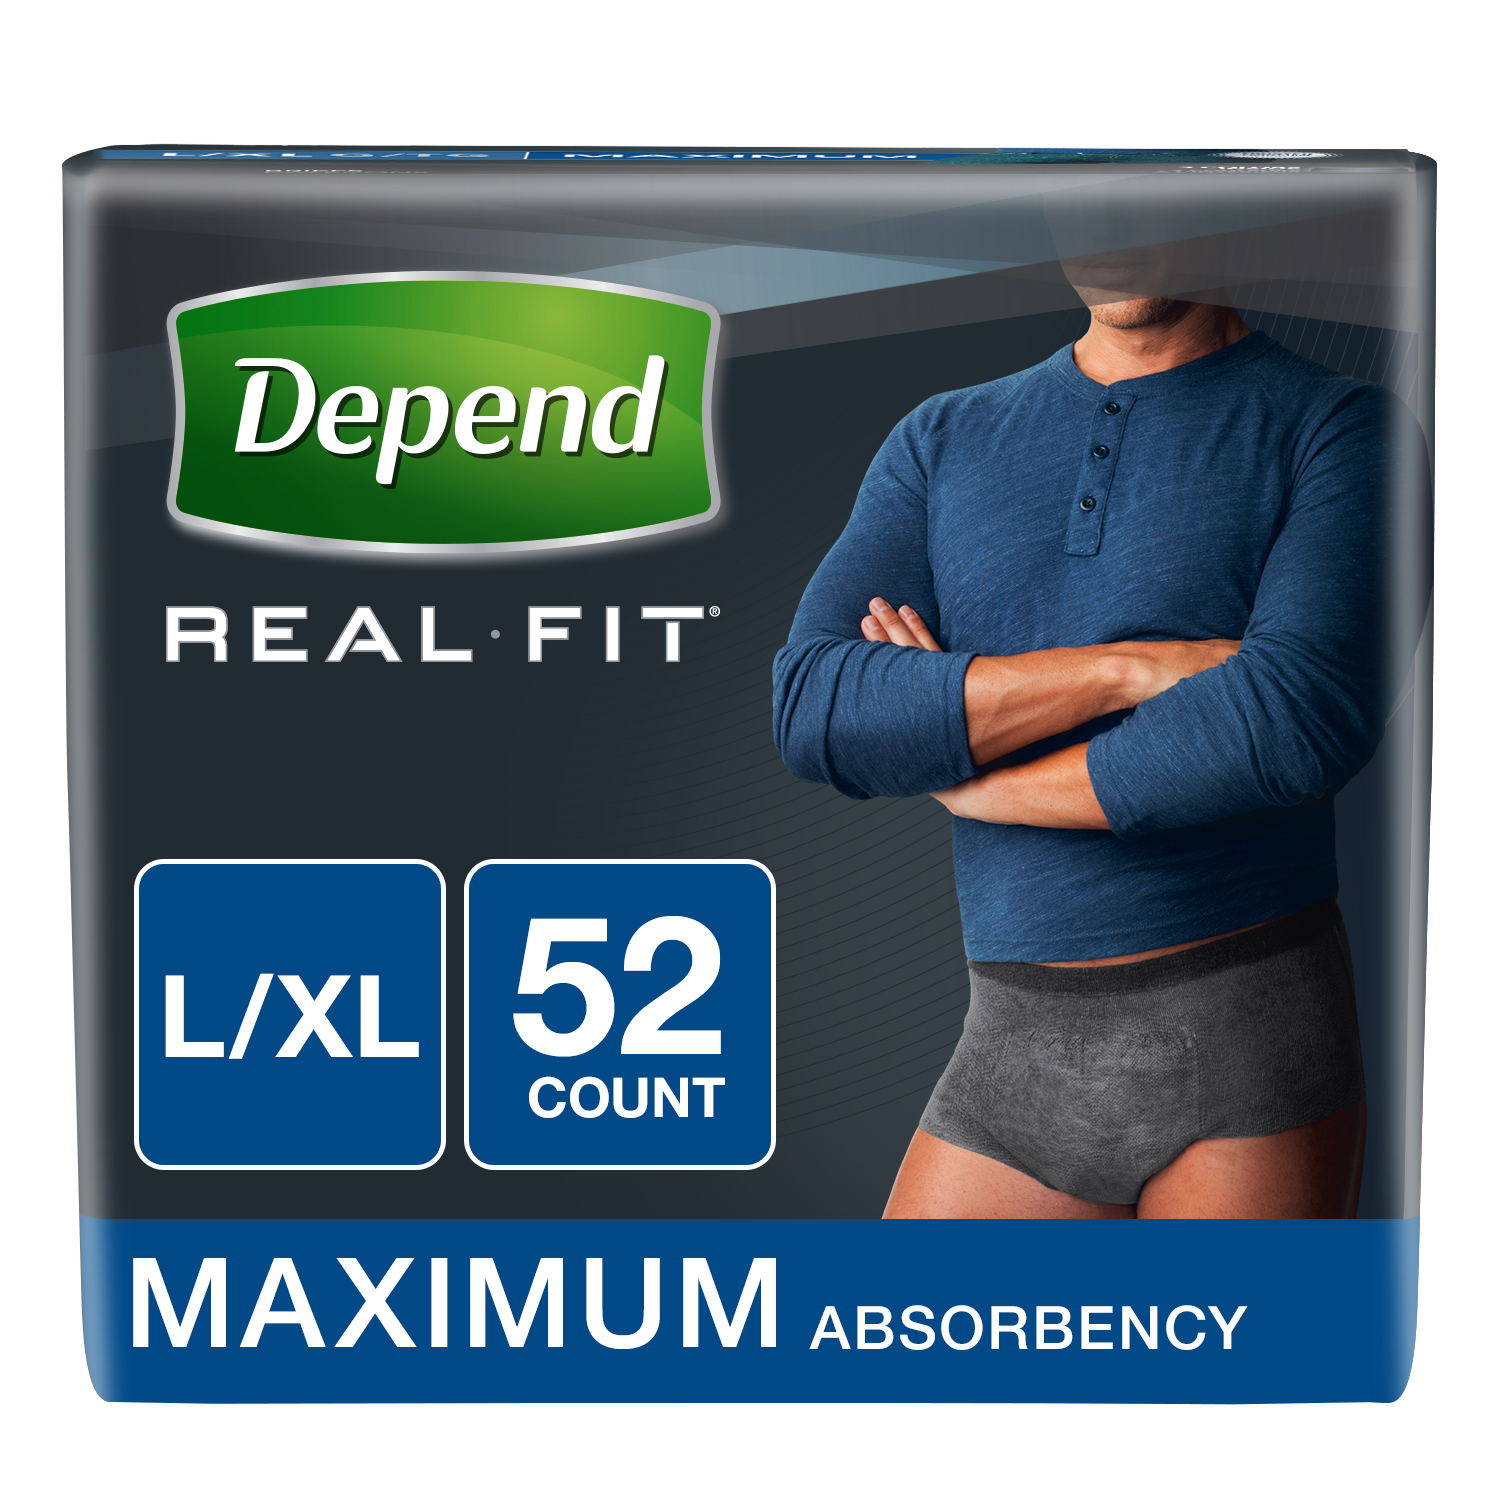 Depend Real Fit Incontinence Briefs for Men, Maximum Absorbency, L/XL, Black, 52 count